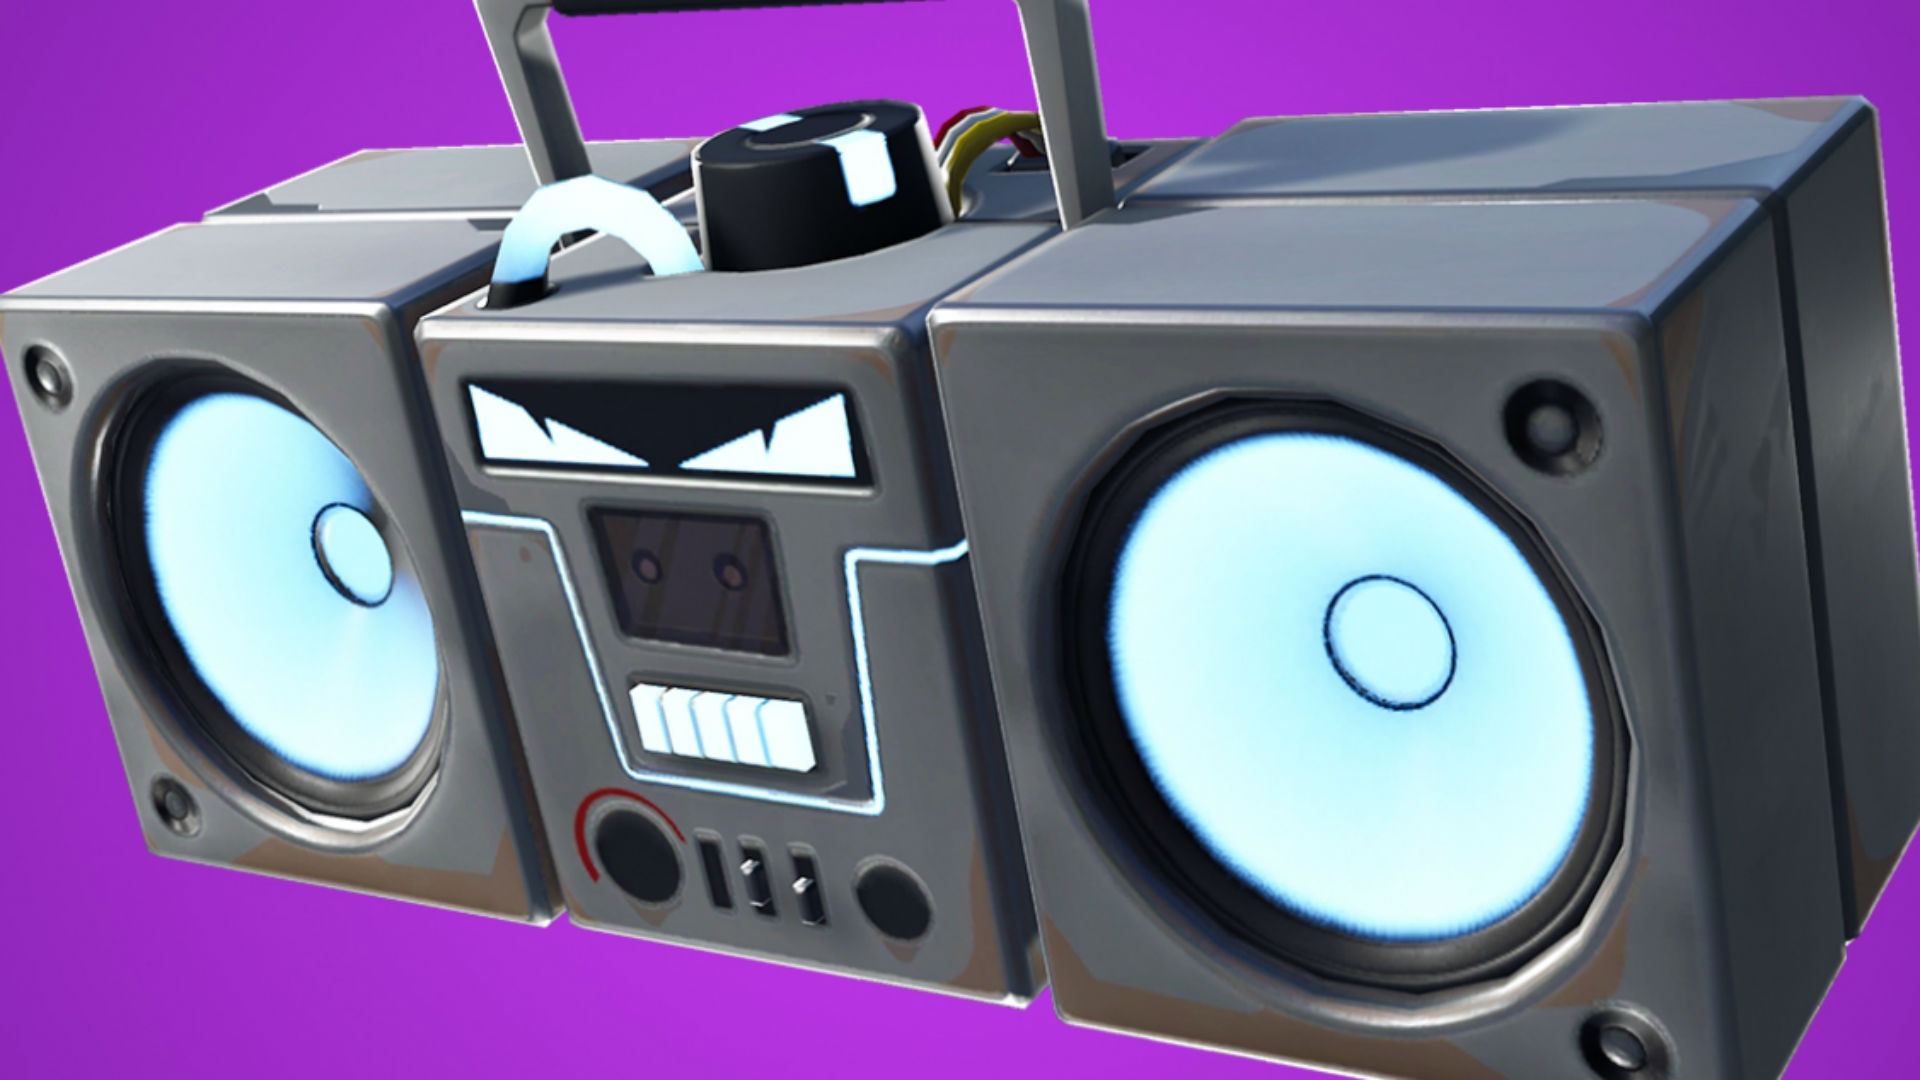 fortnite u2019s new boombox item makes building impossible